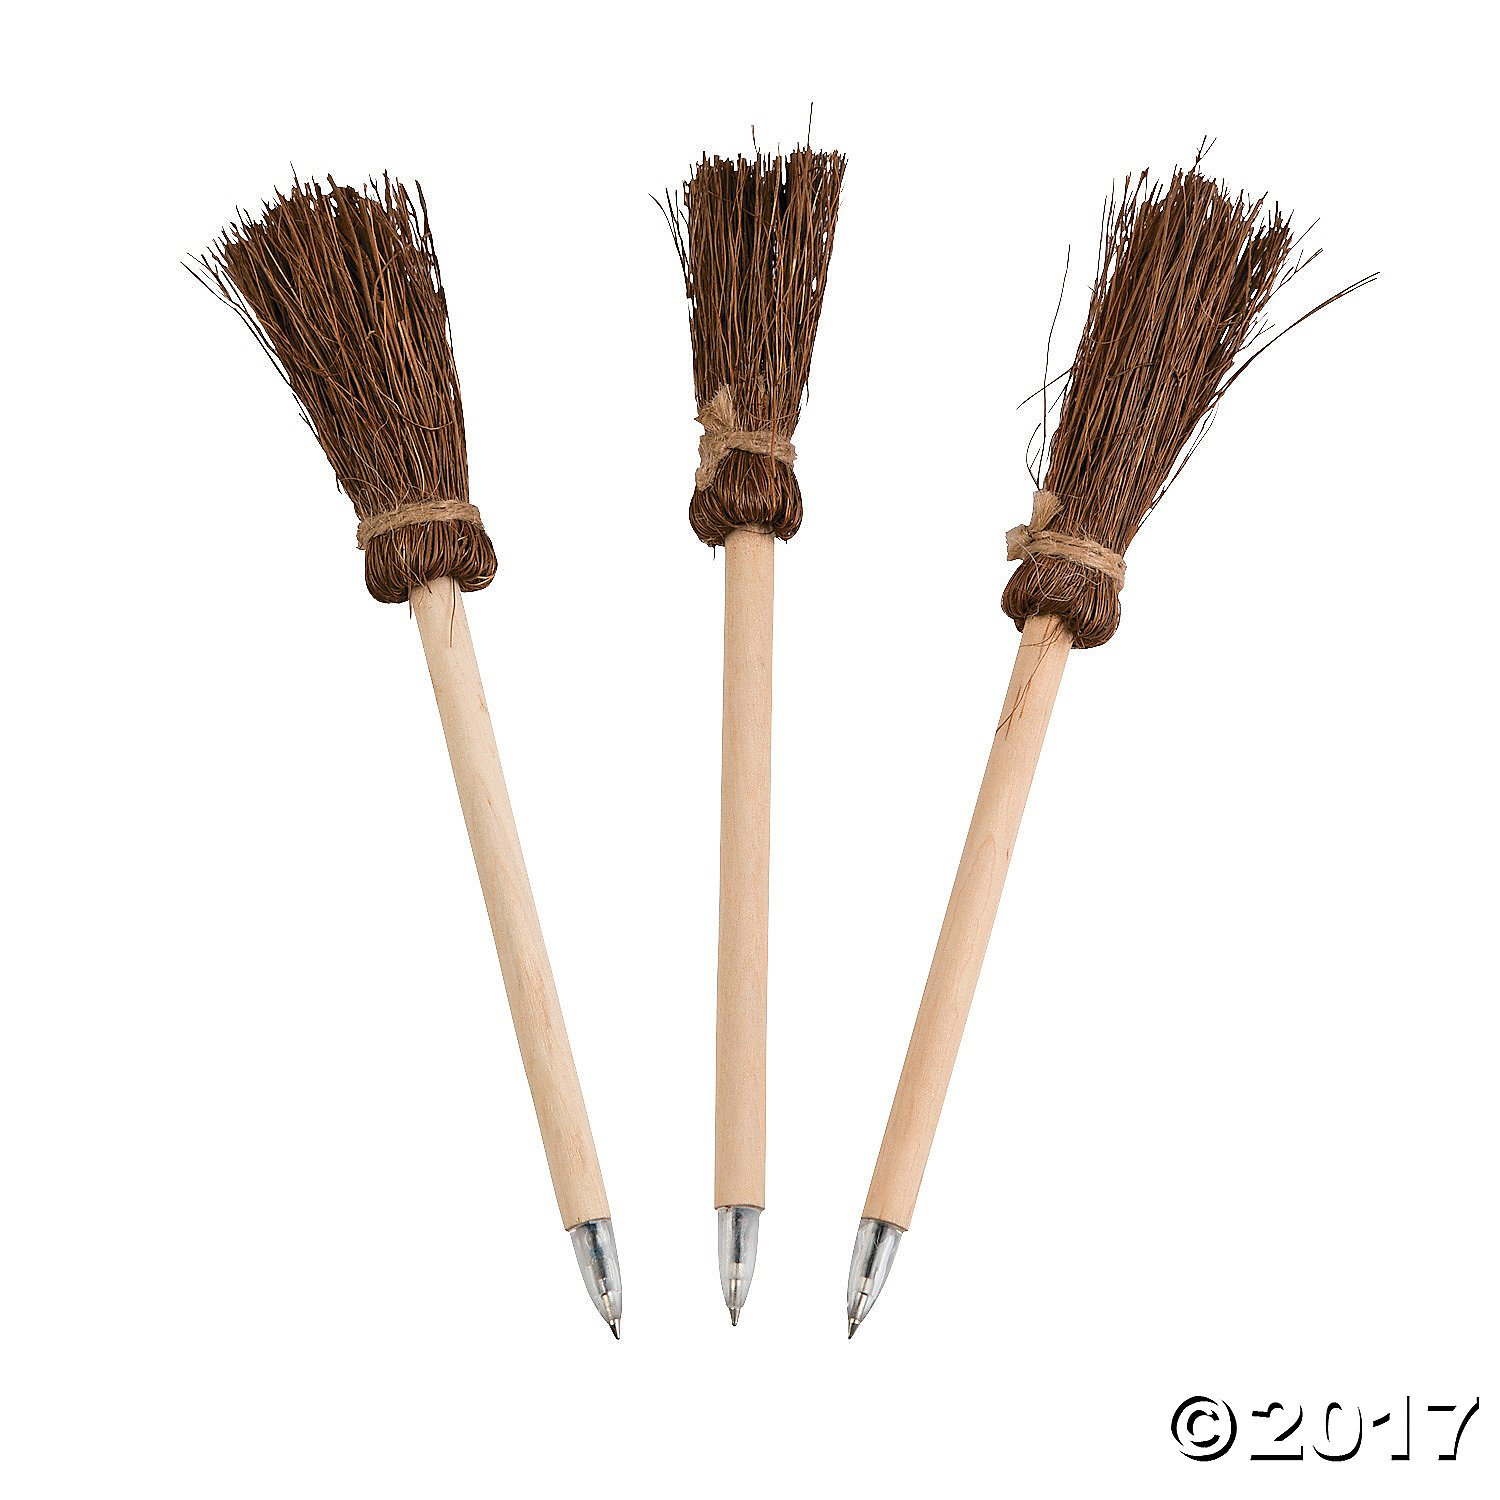 Witches Broom Pens - 24 ct by Fun Express (Image #1)